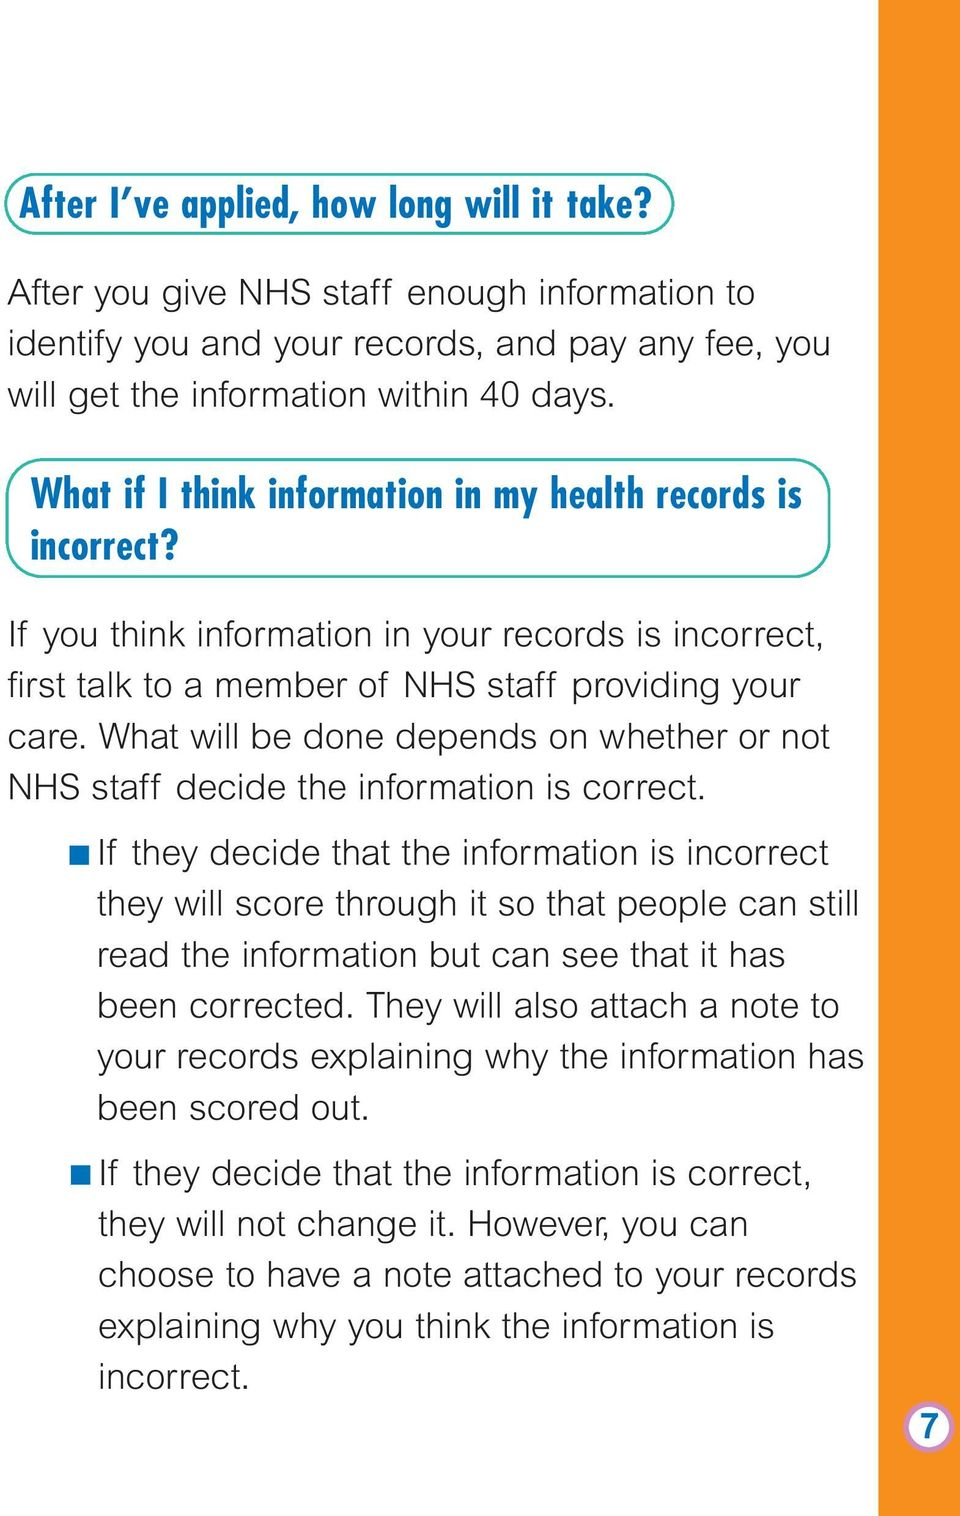 What will be done depends on whether or not NHS staff decide the information is correct.